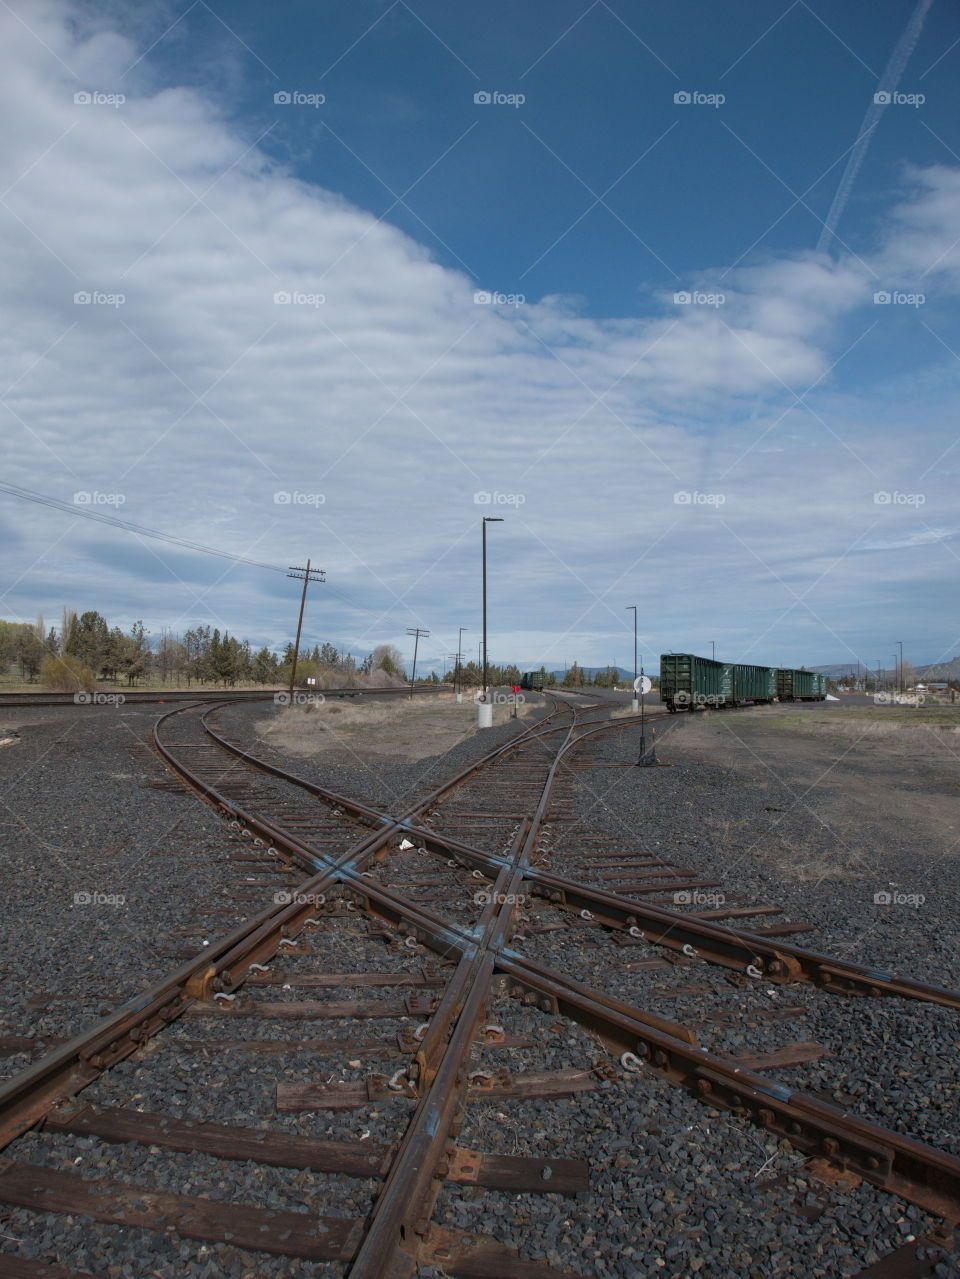 A few abandoned train cars on tracks that criss-cross each other on a sunny spring day in Central Oregon.